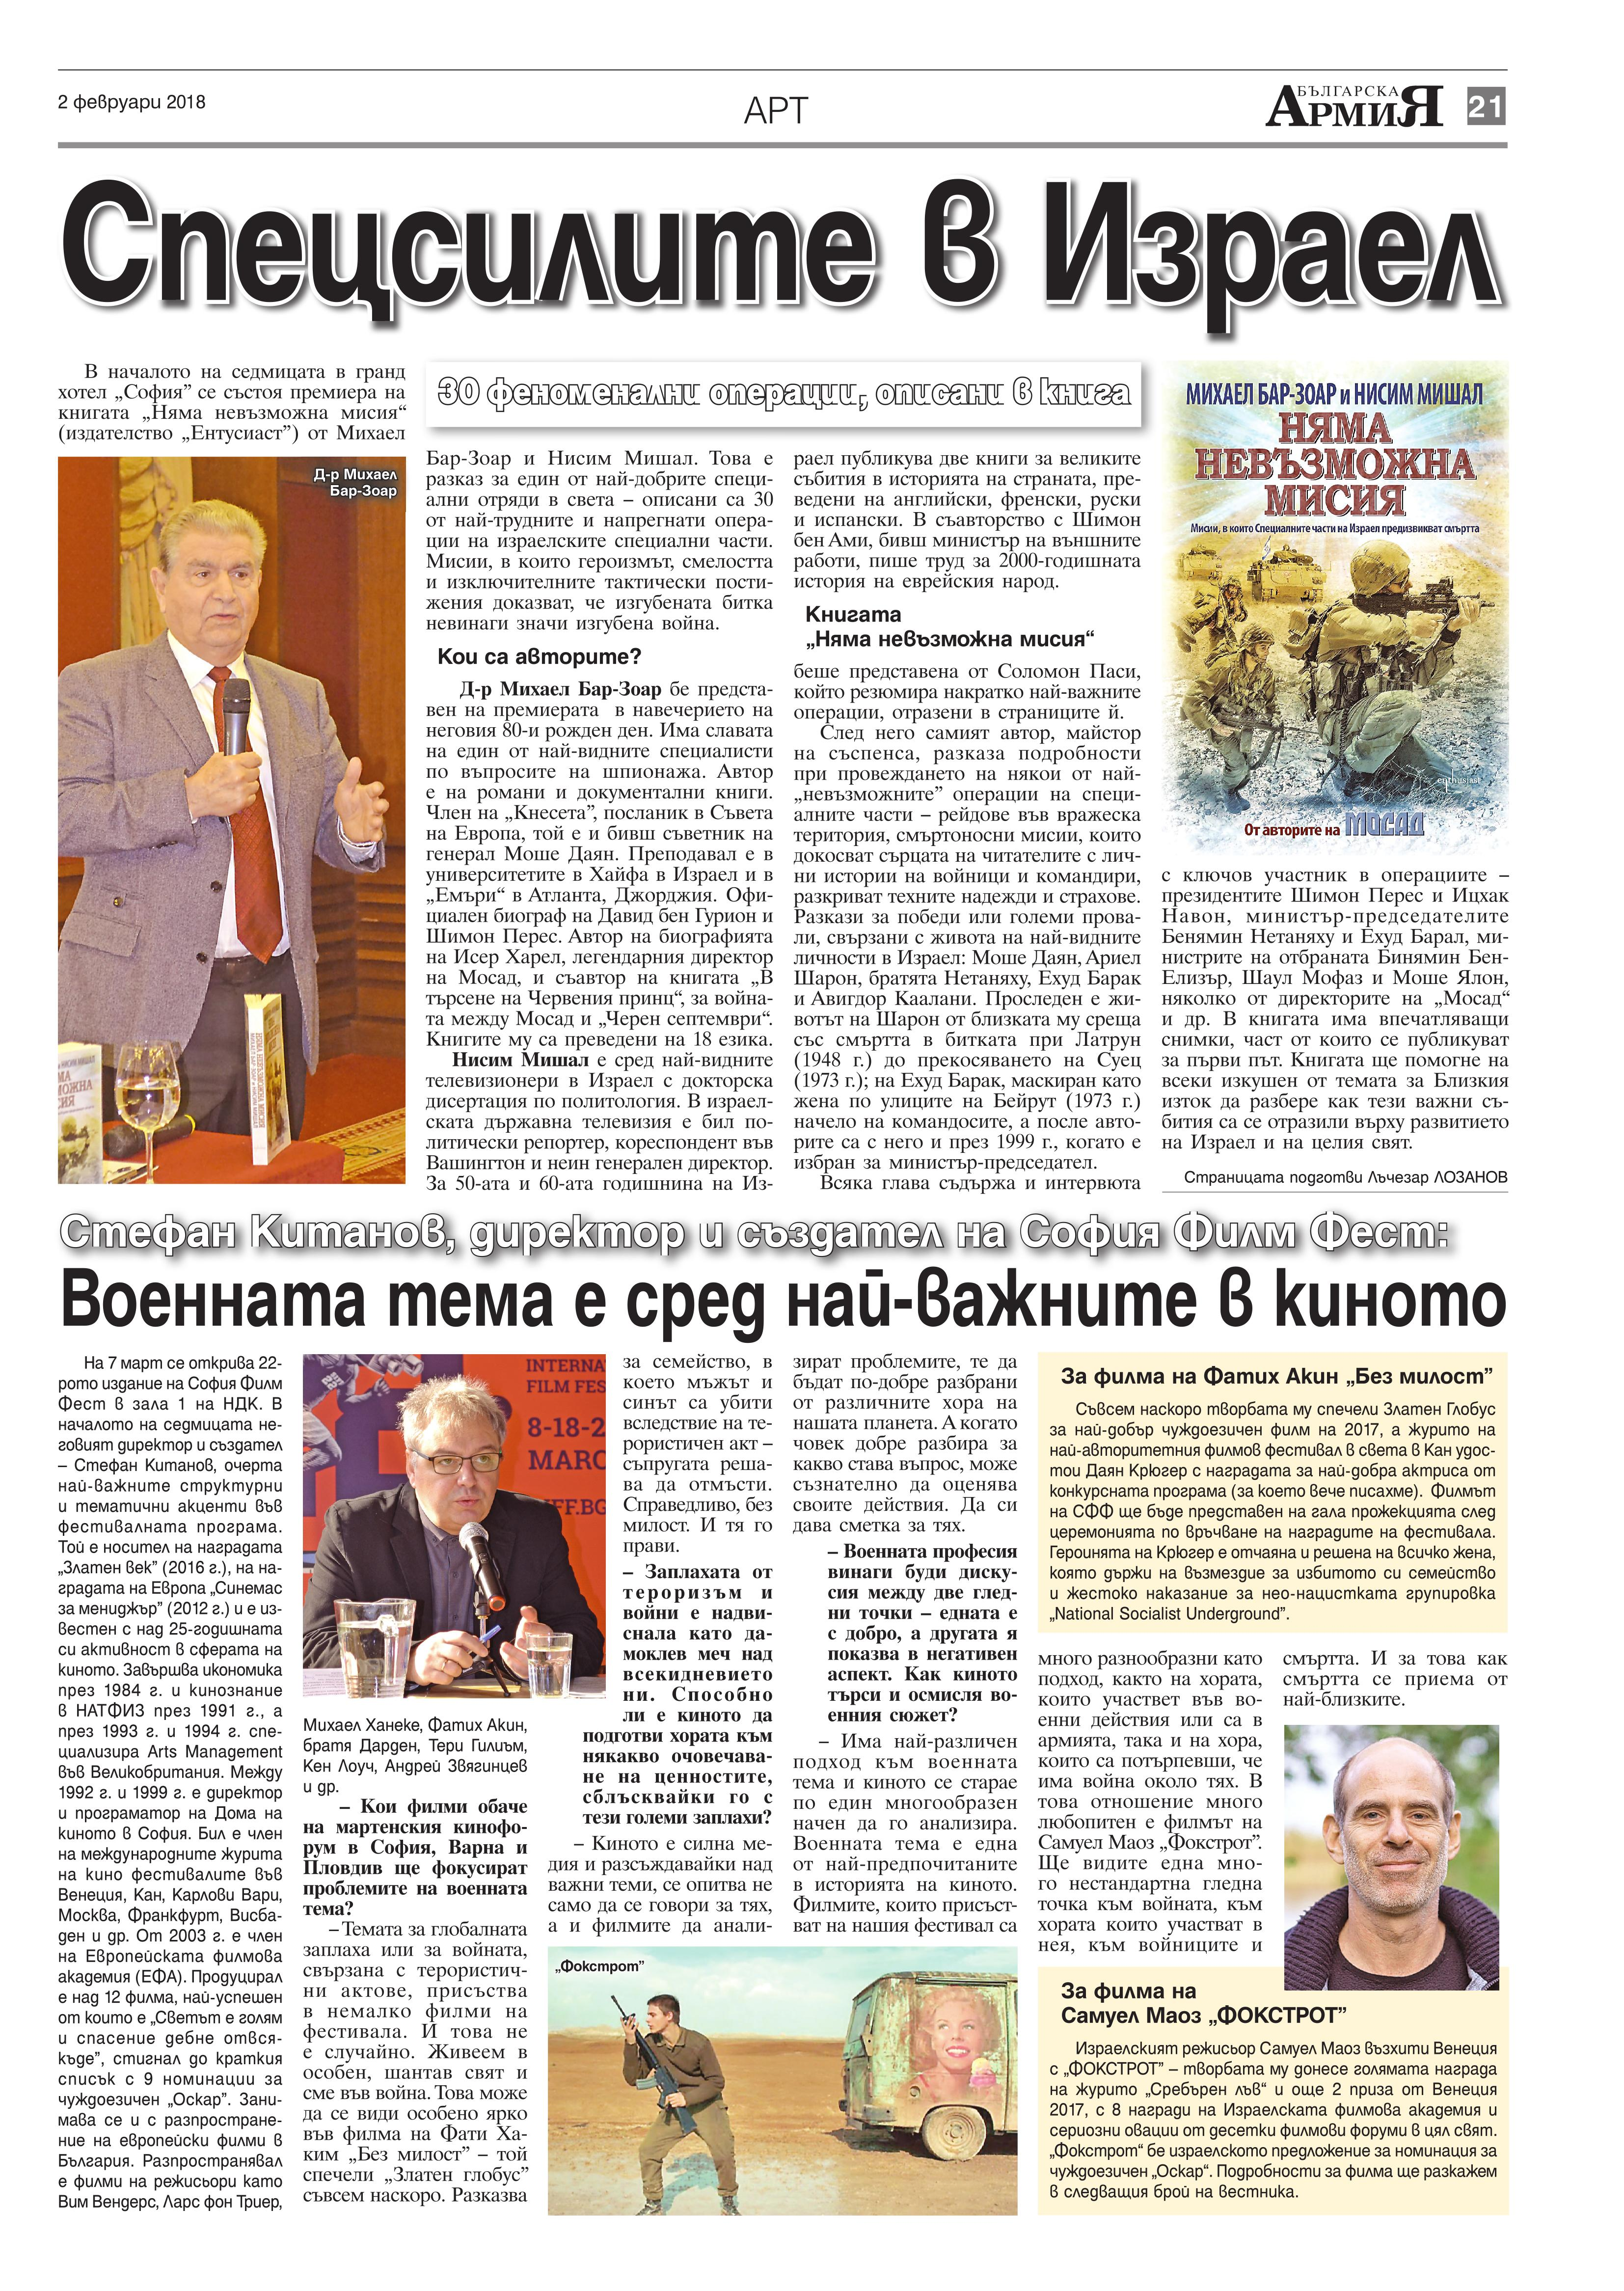 https://armymedia.bg/wp-content/uploads/2015/06/21.page1_-38.jpg